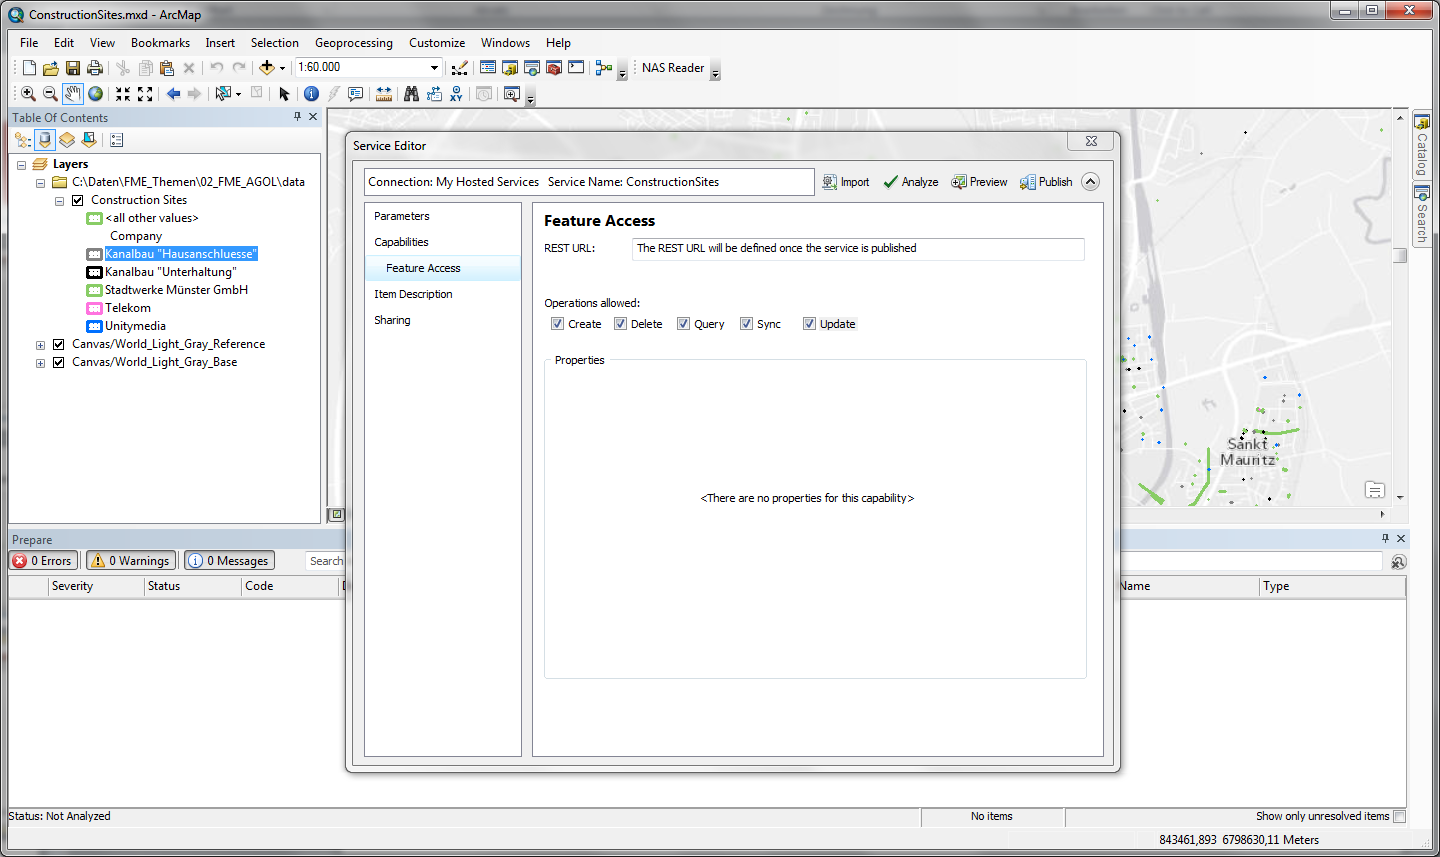 Step 2: ArcMap Creating an